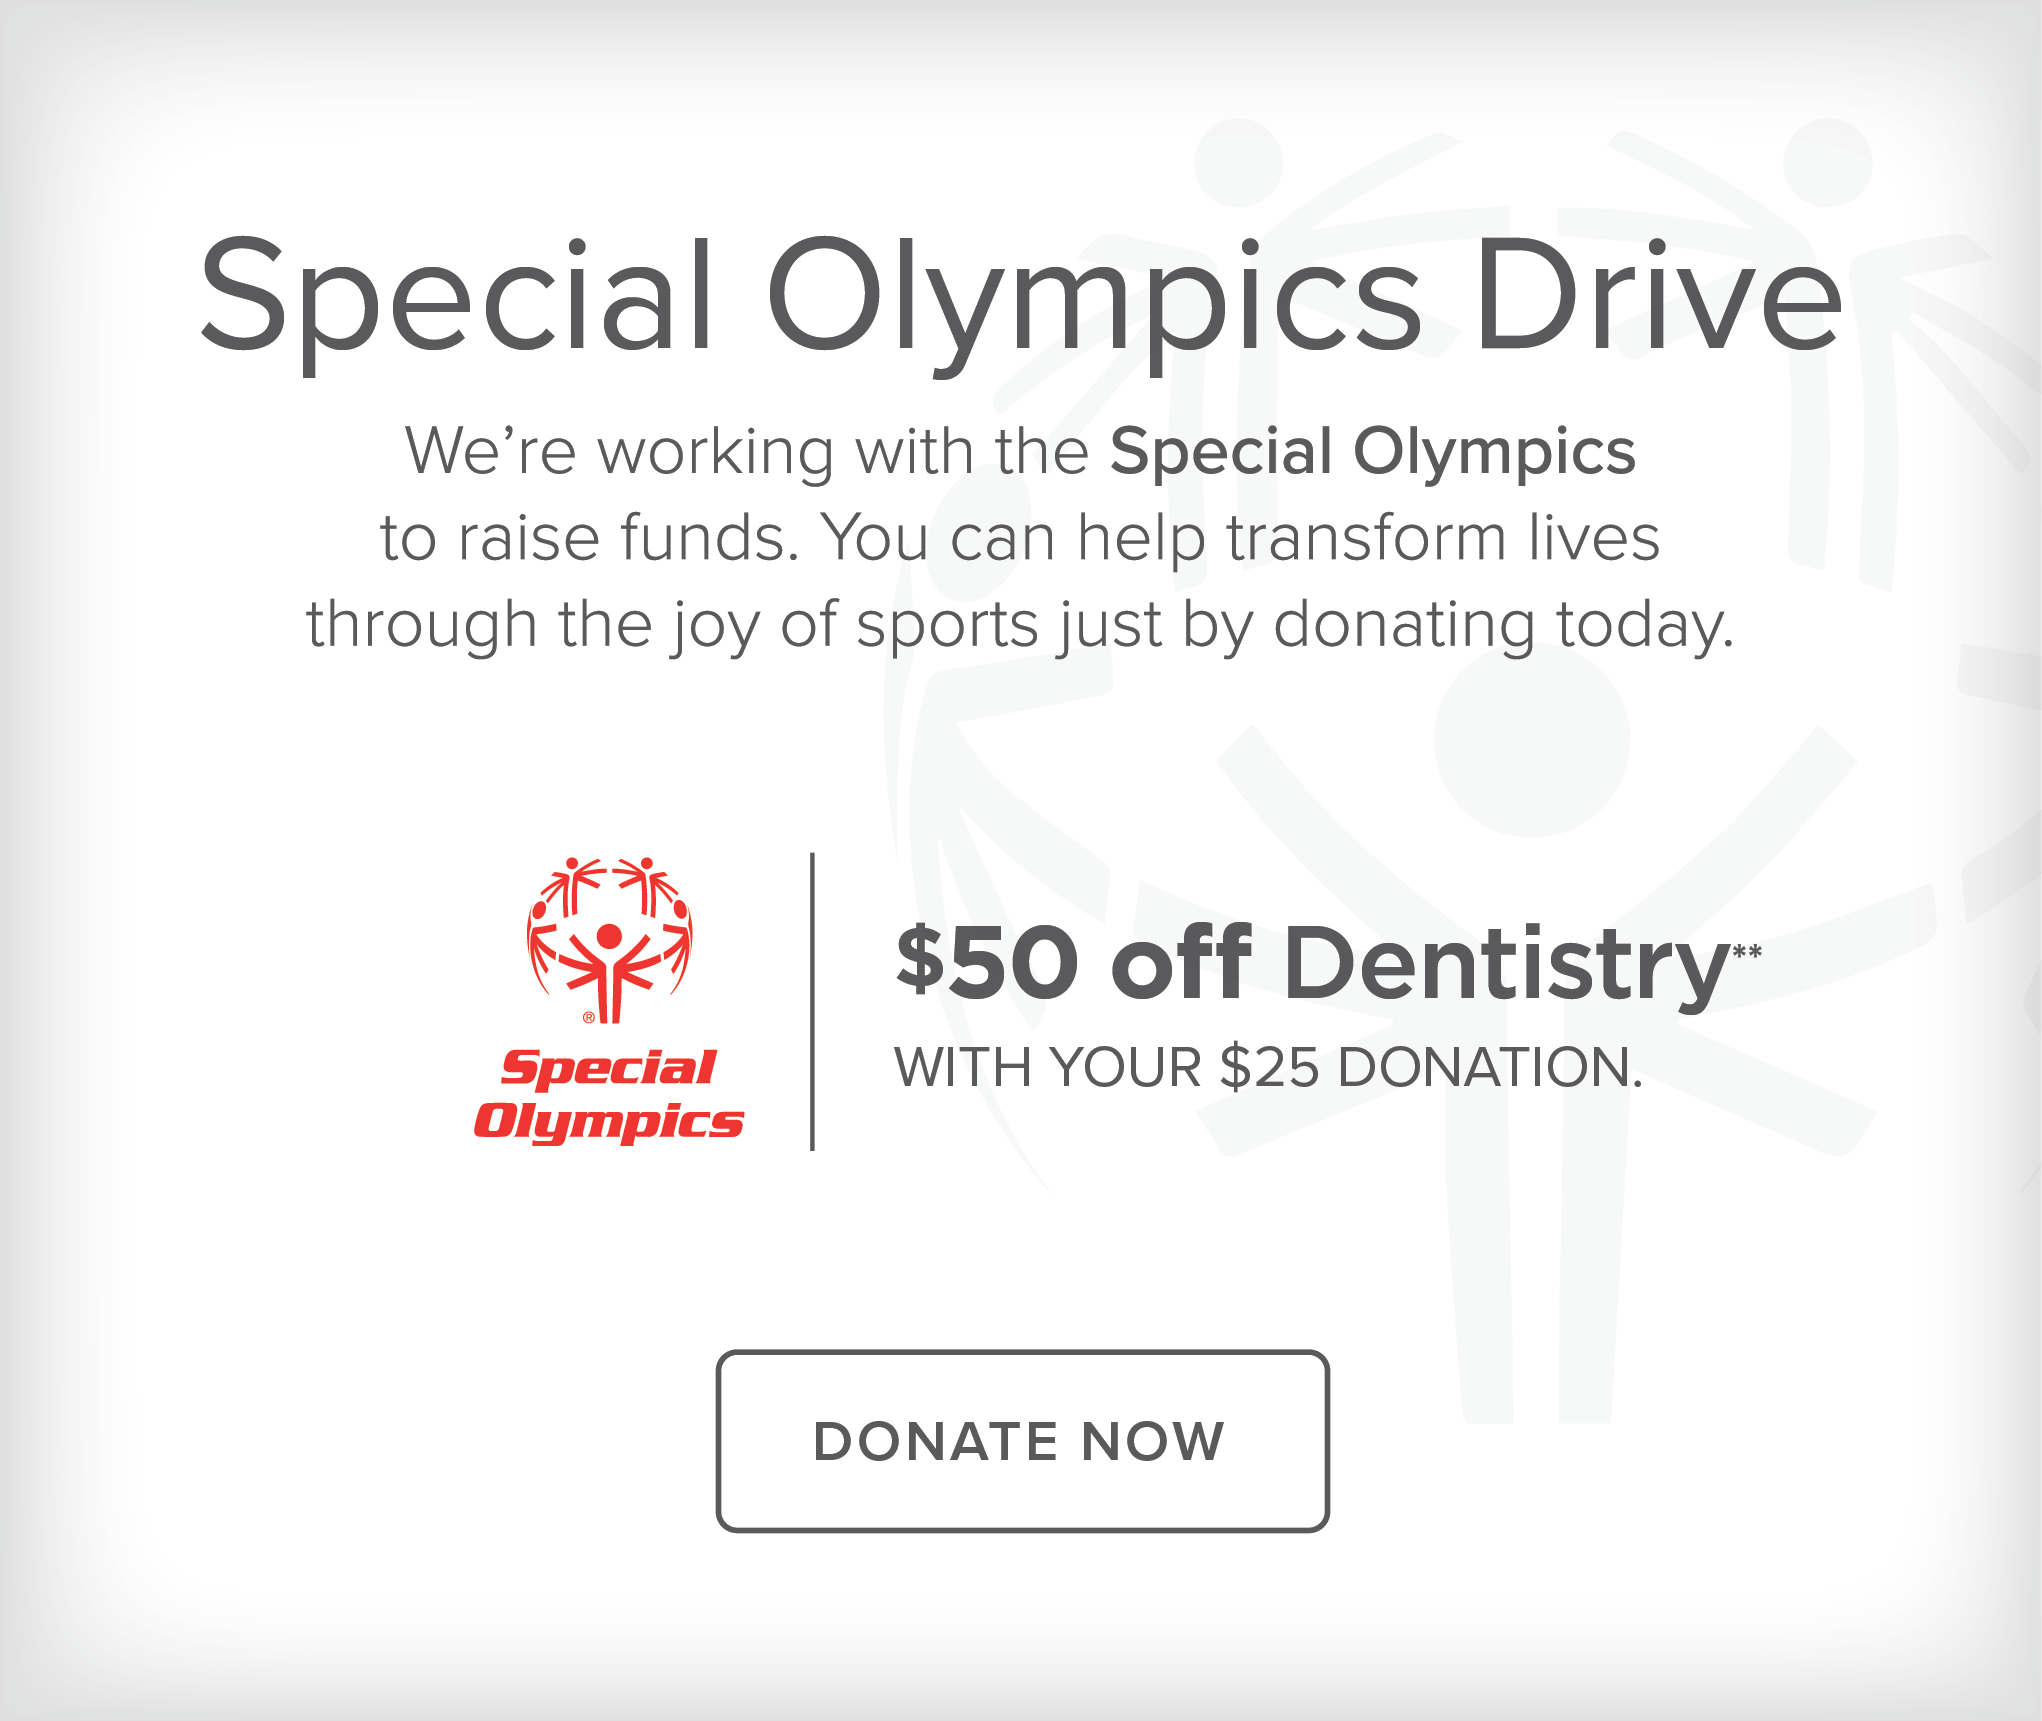 Special Olympics Drive - Orchard Dental Group and Orthodontics